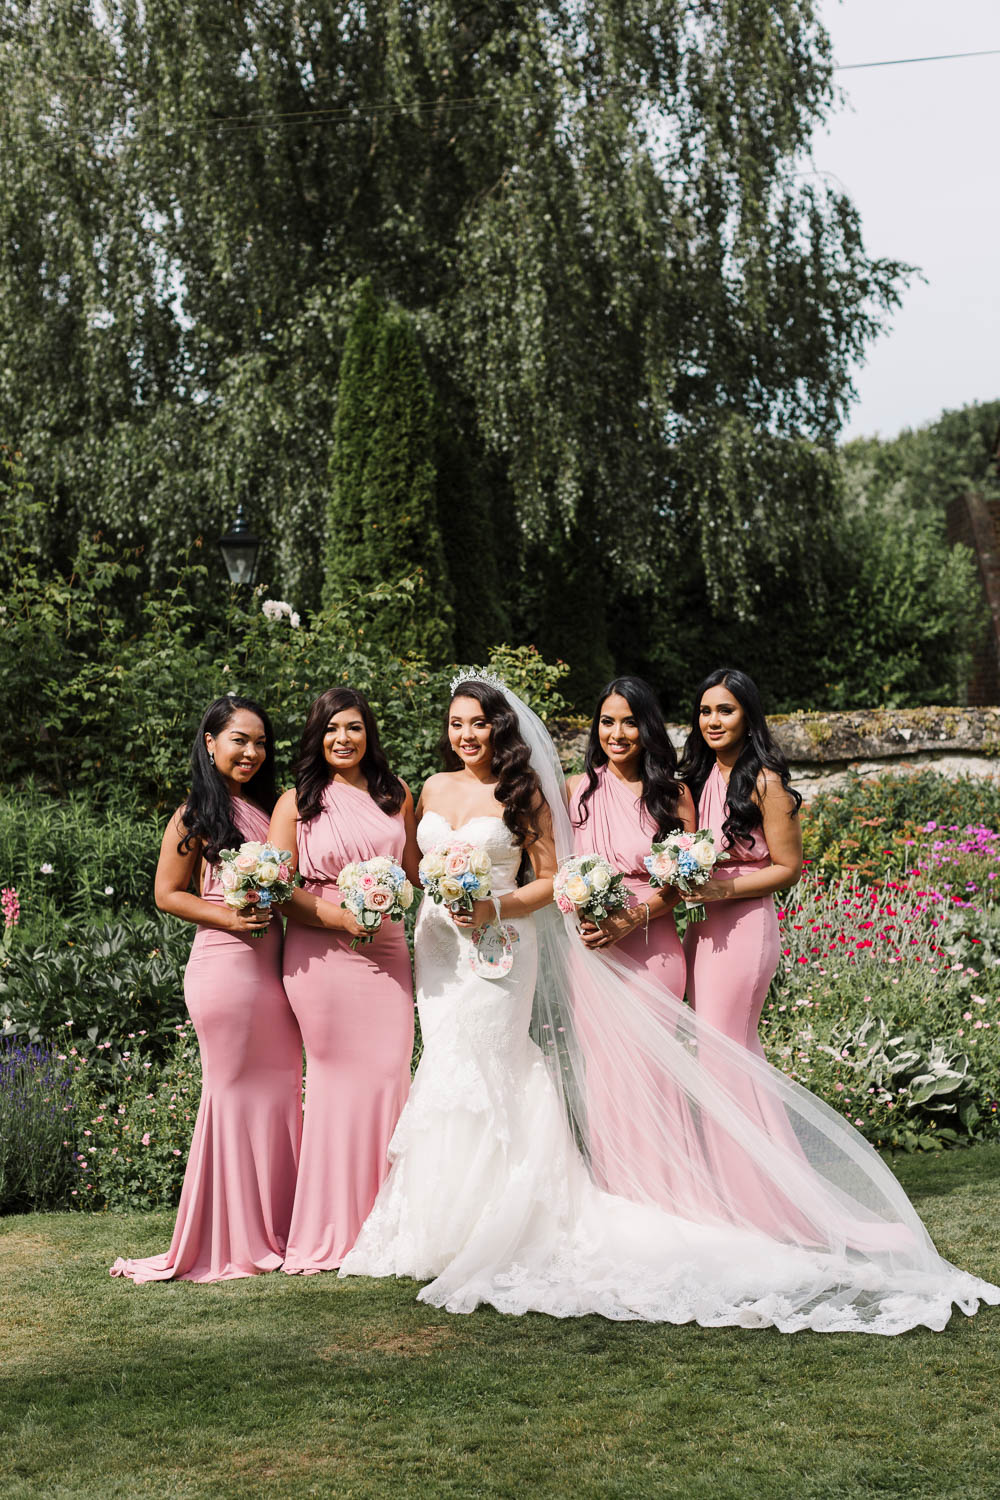 Bride Bridal Fishtail Dress Gown Fit & Flare Tiara Veil Bouquet Rose Hydrangea Pink Floor Length Maxi Bridesmaids Brewerstreet Farmhouse Wedding Danielle Smith Photography